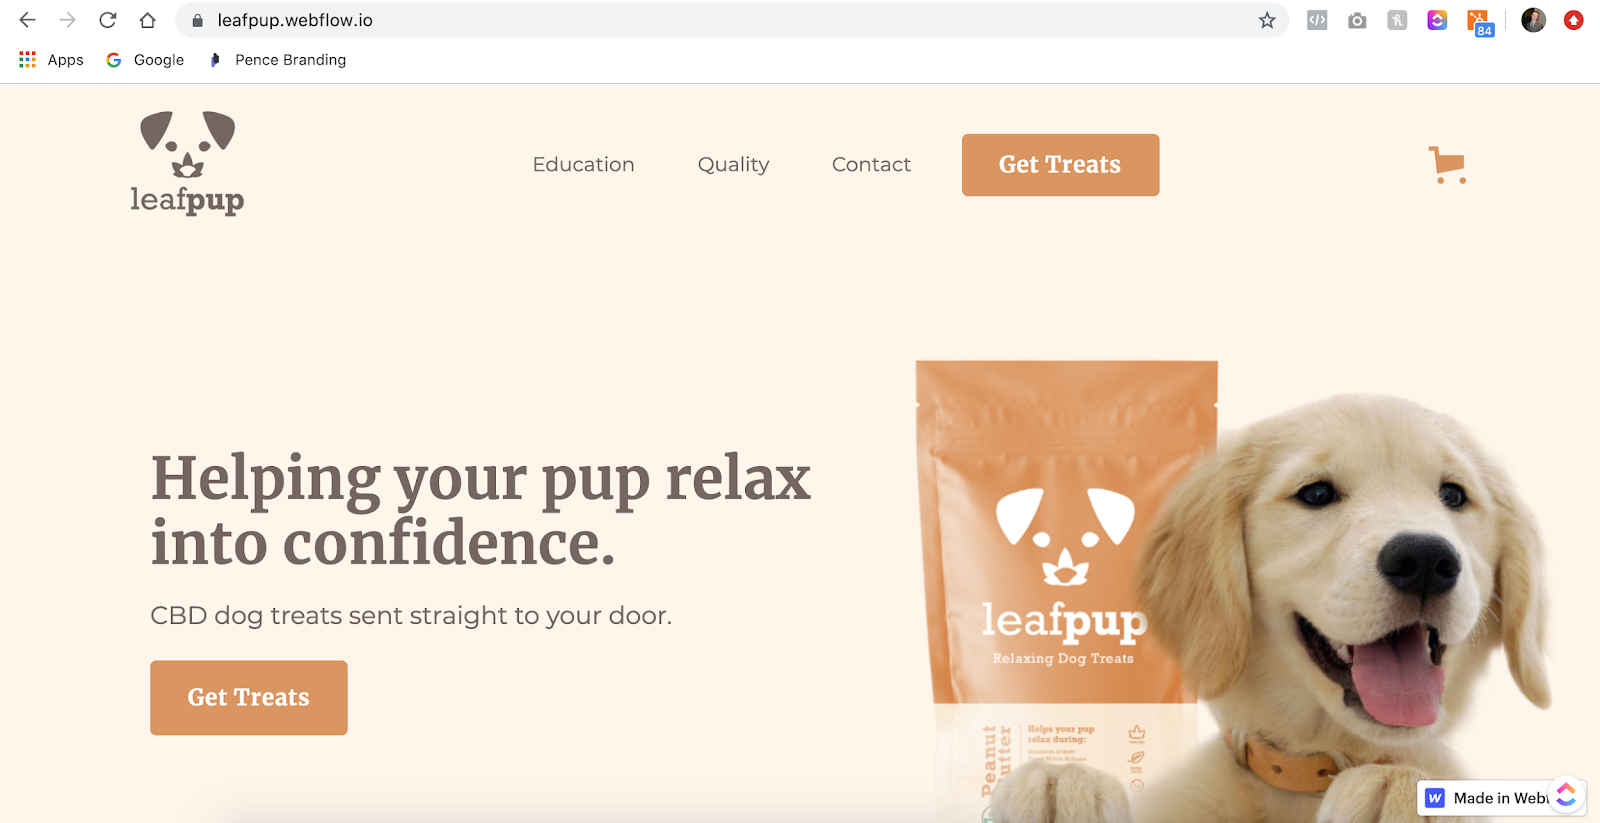 Leafpup's Website